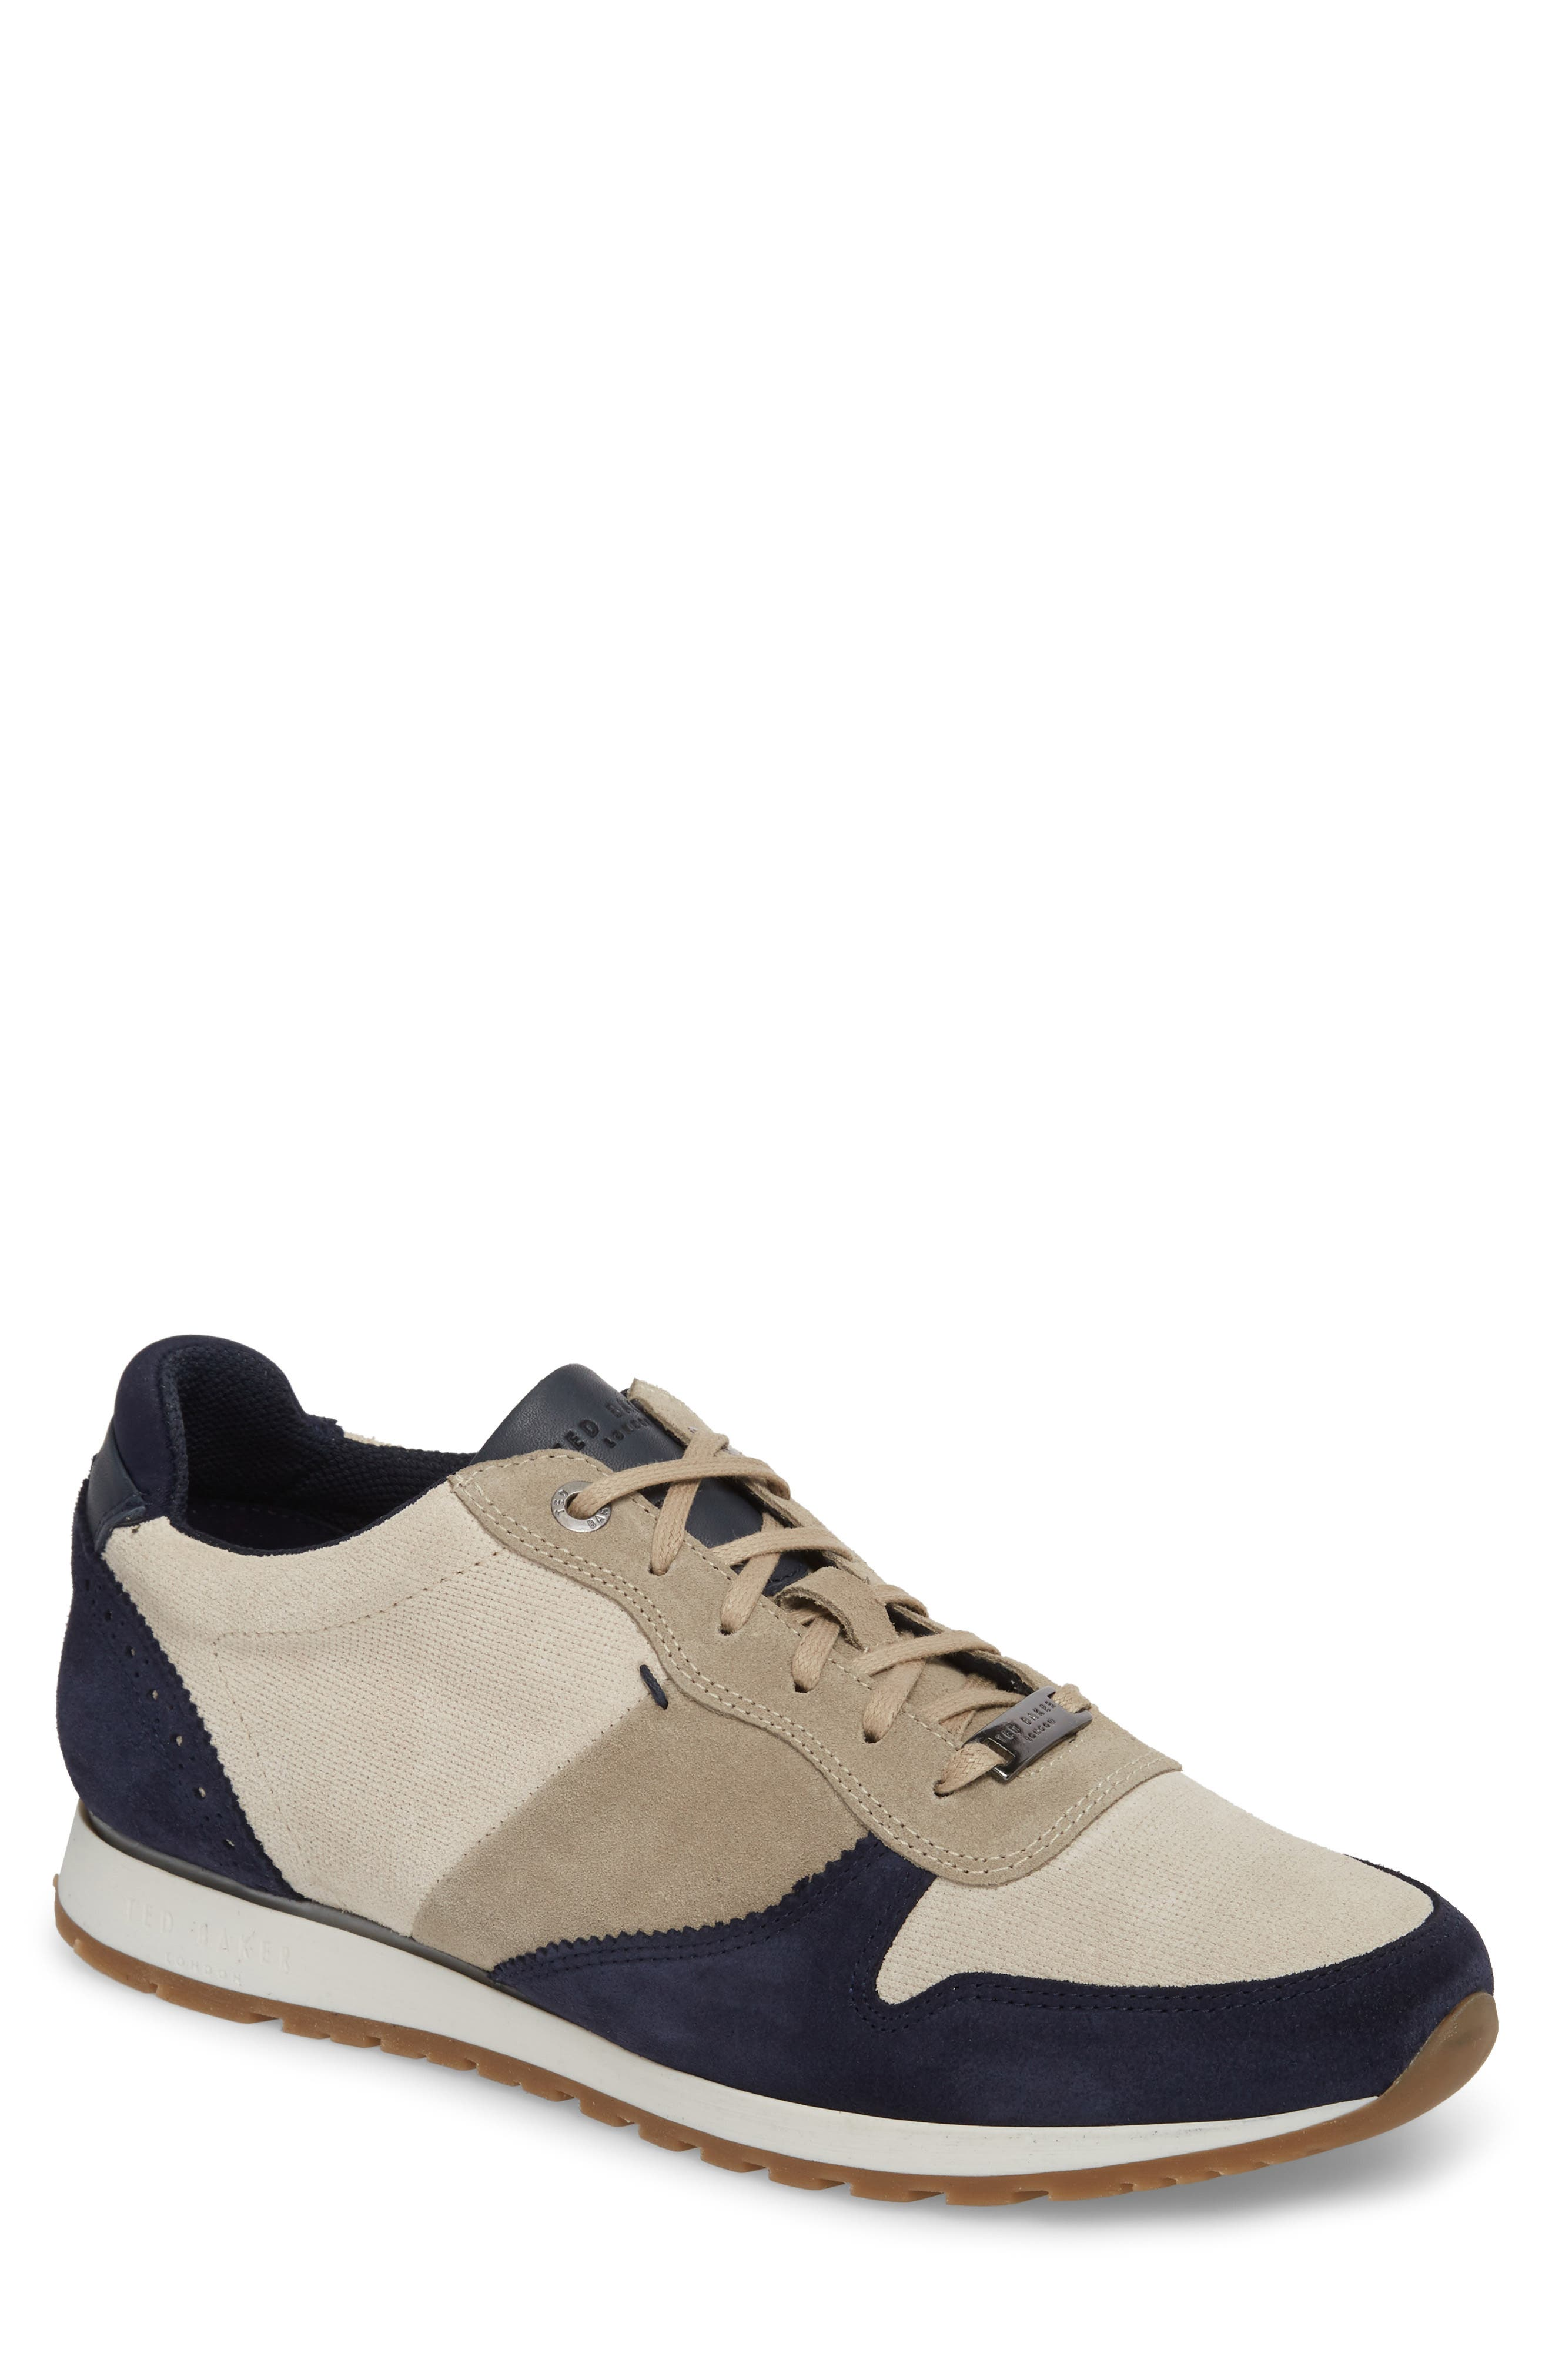 Shindls Low Top Sneaker,                             Main thumbnail 1, color,                             Dark Blue/ Grey Leather/ Suede